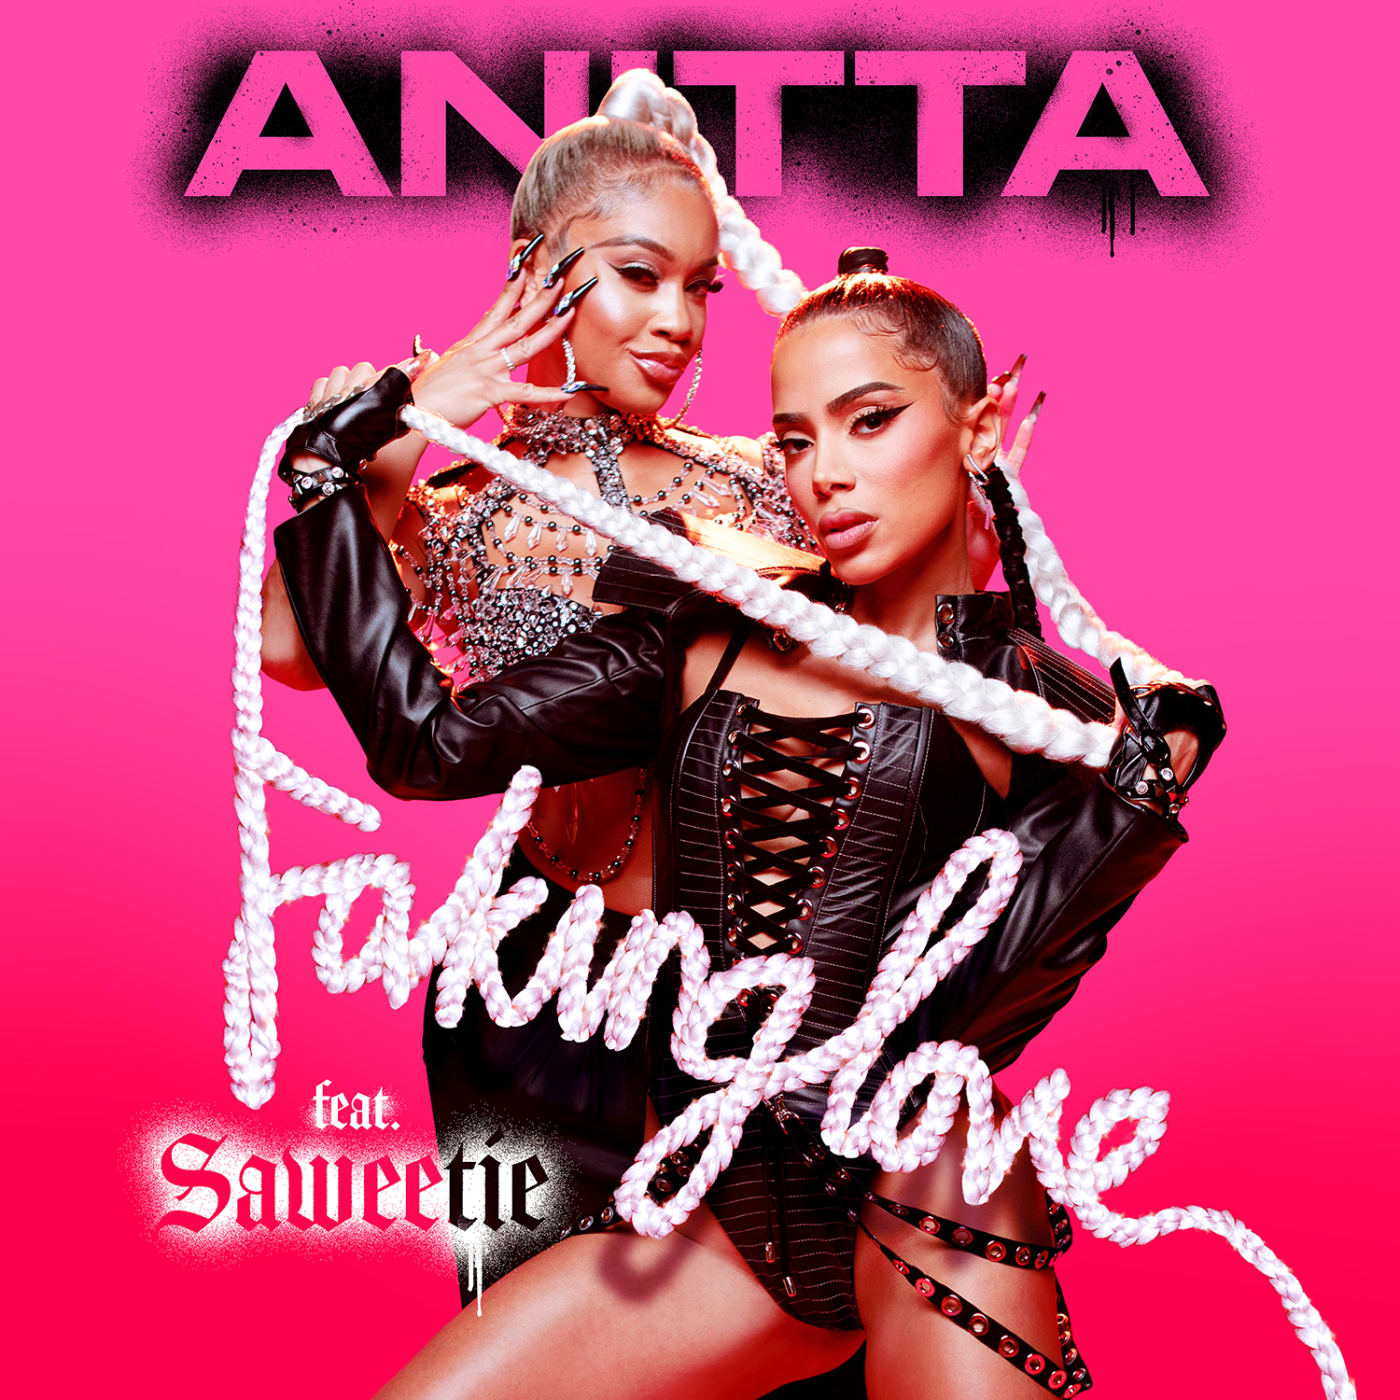 """The art work for Anitta and Saweetie's new song """"Faking Love"""""""